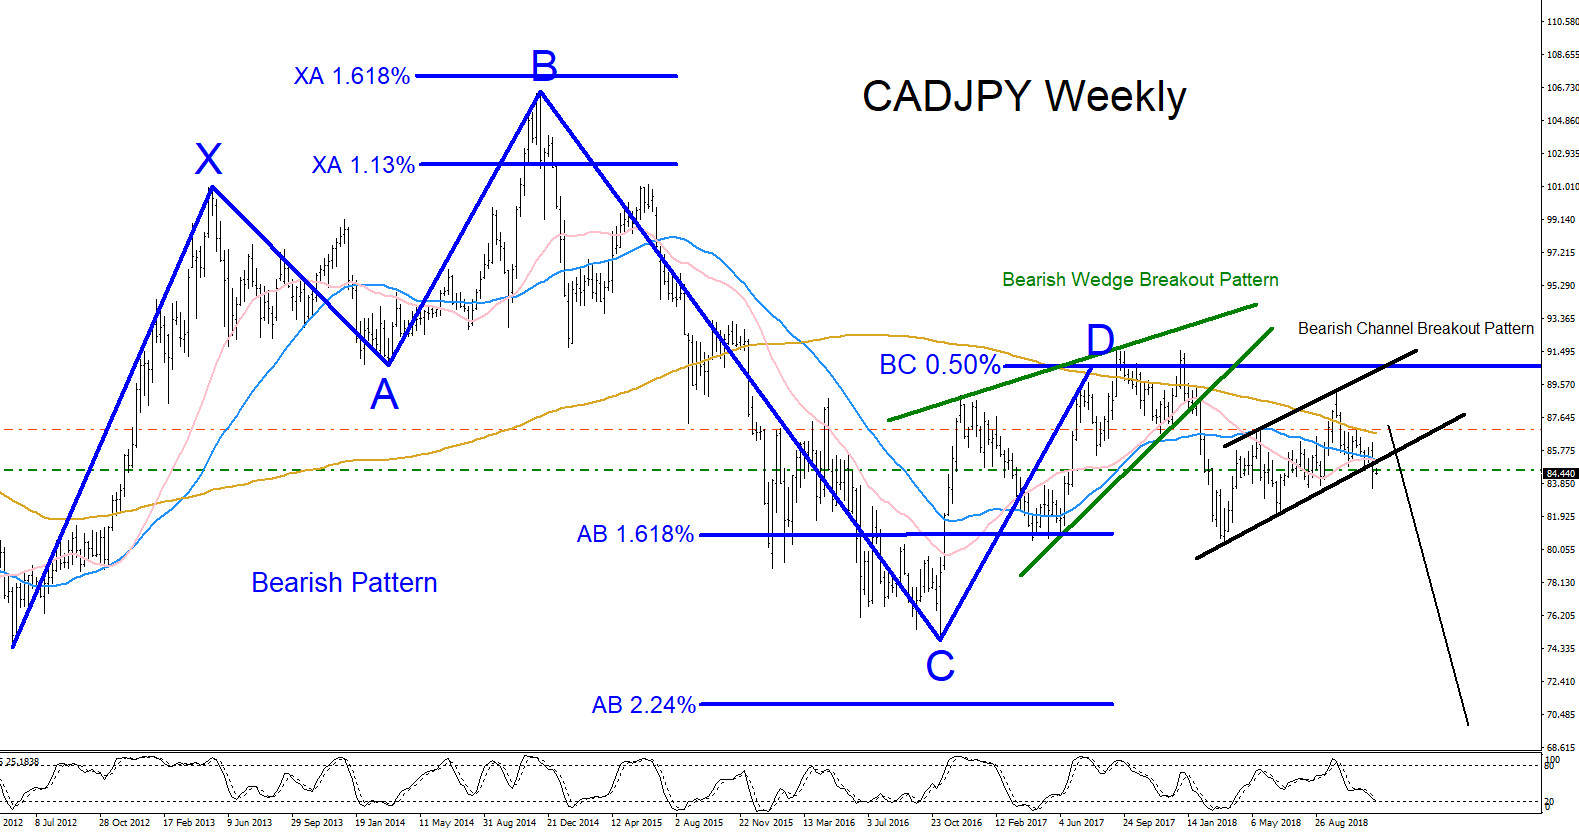 CADJPY, forex, technical analysis, patterns, elliottwave, elliott wave